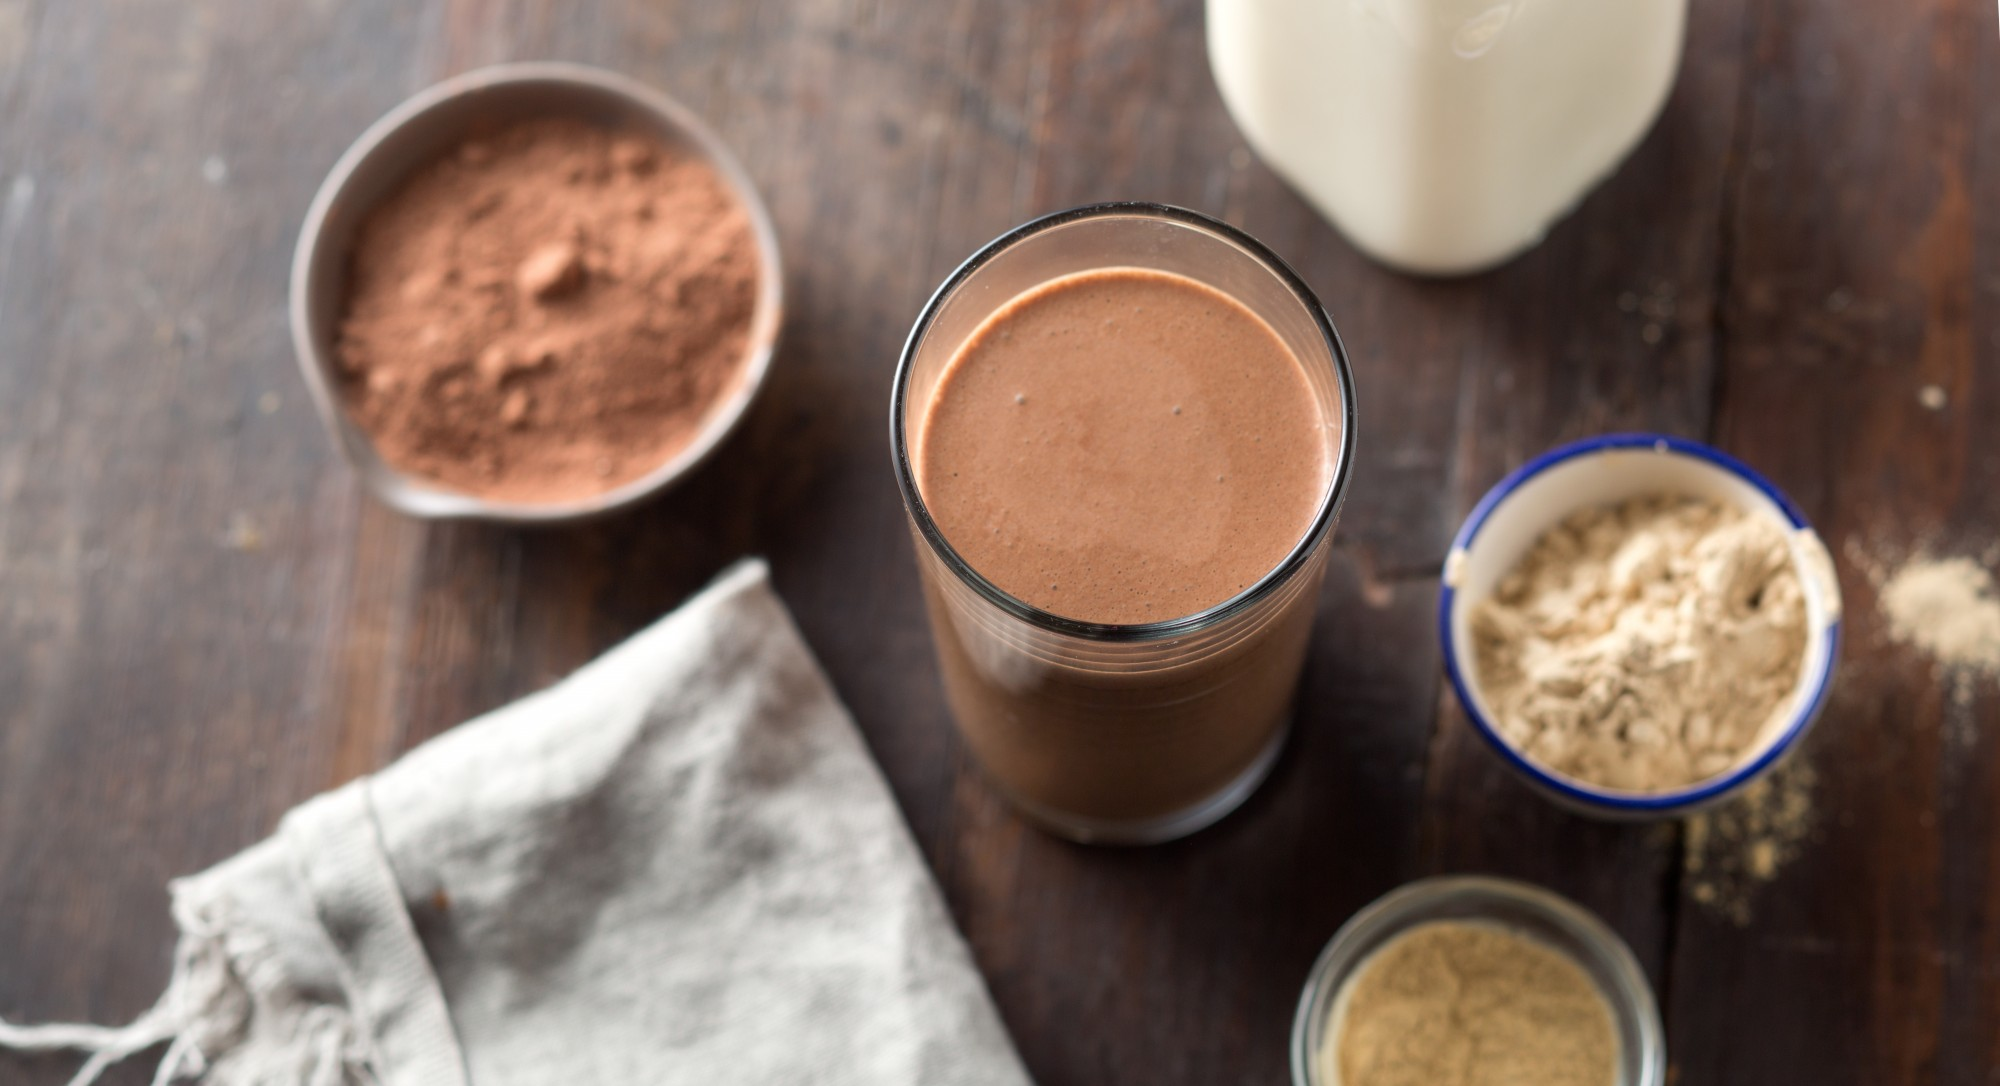 Who Needs Coffee When You Can Start the Day With Superfood Chocolate Milk?